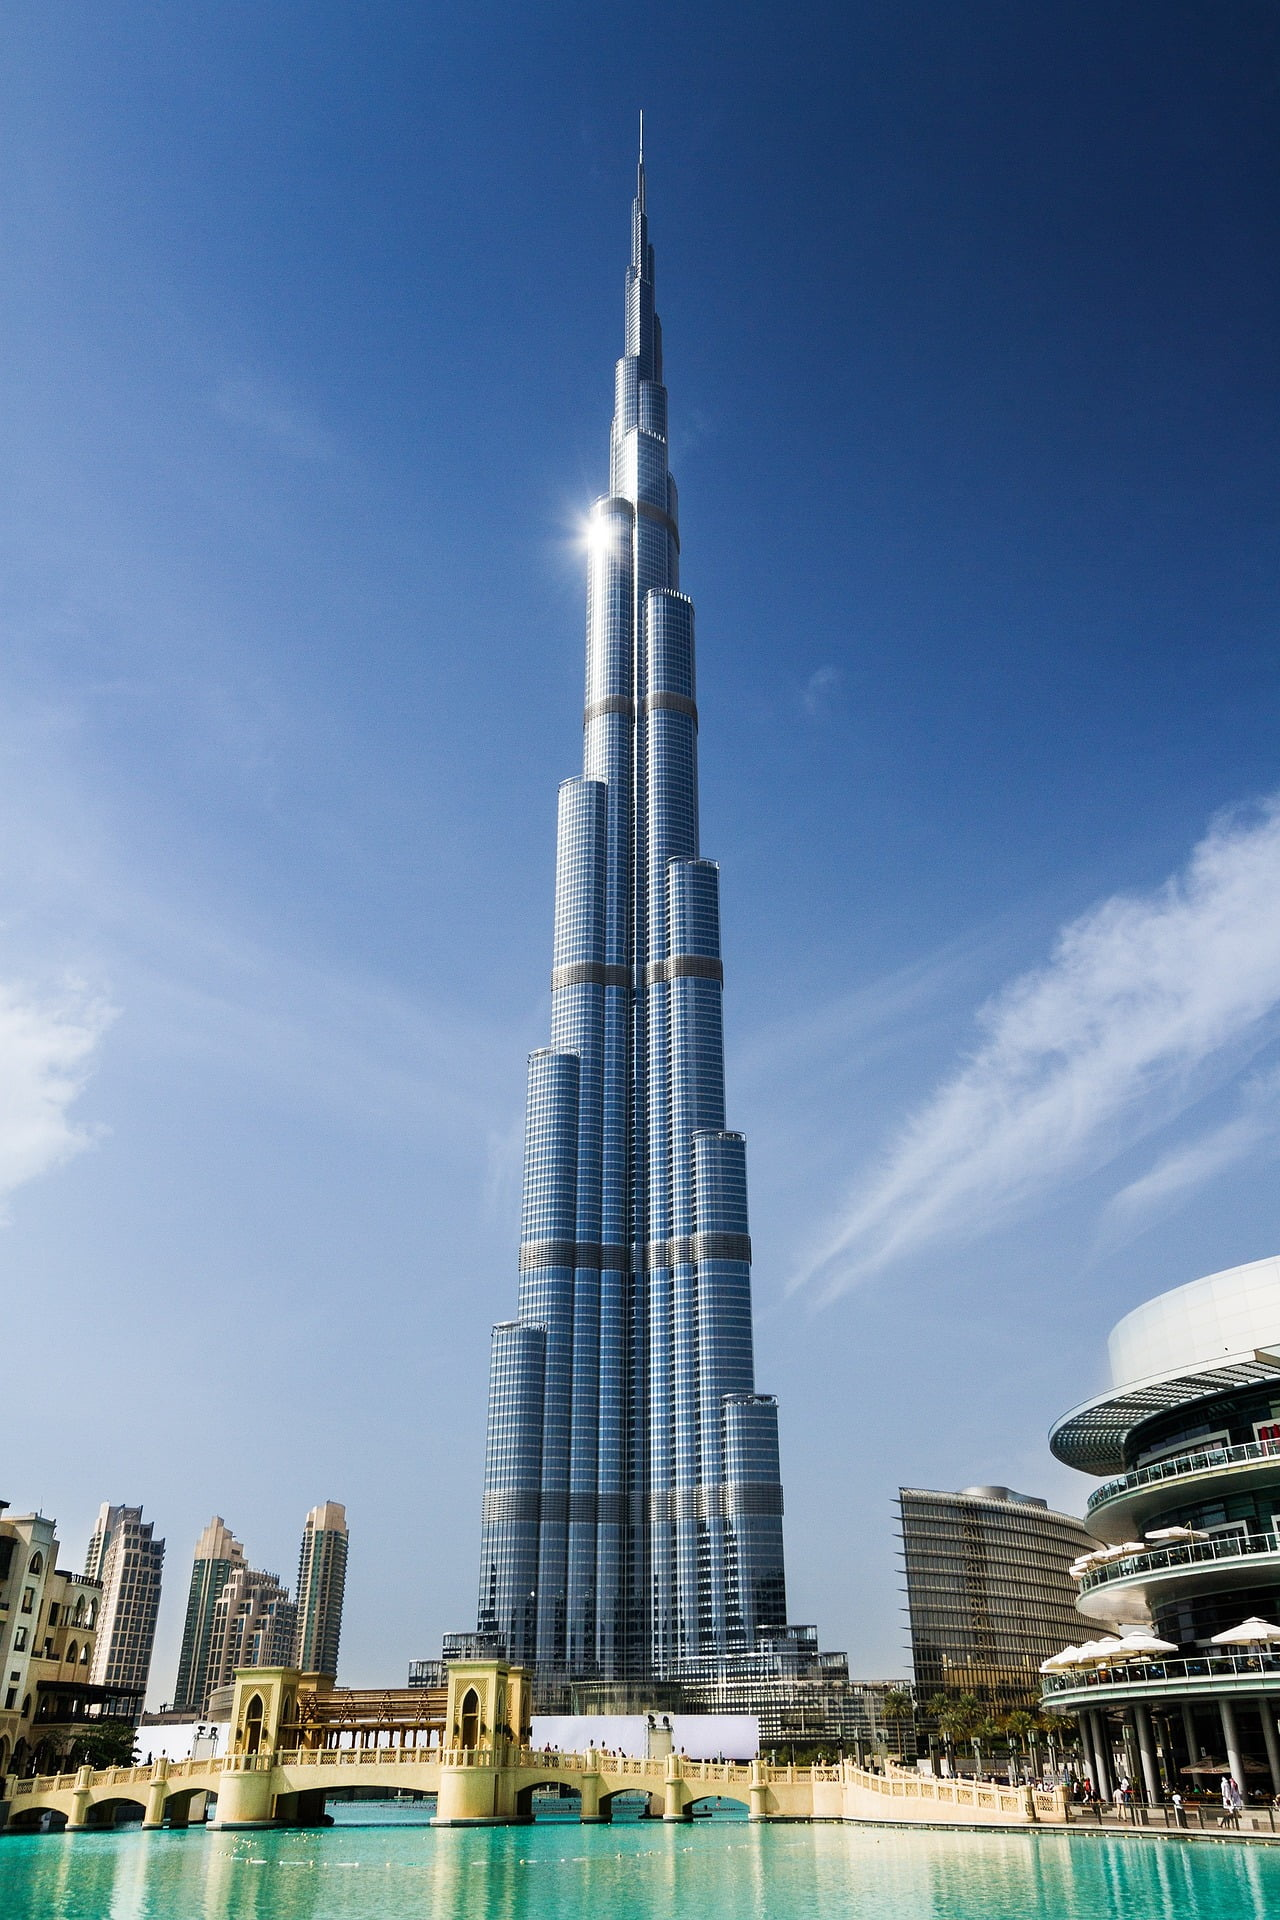 The-tallest-tower-in-the-world-Glimpses-of-the-World